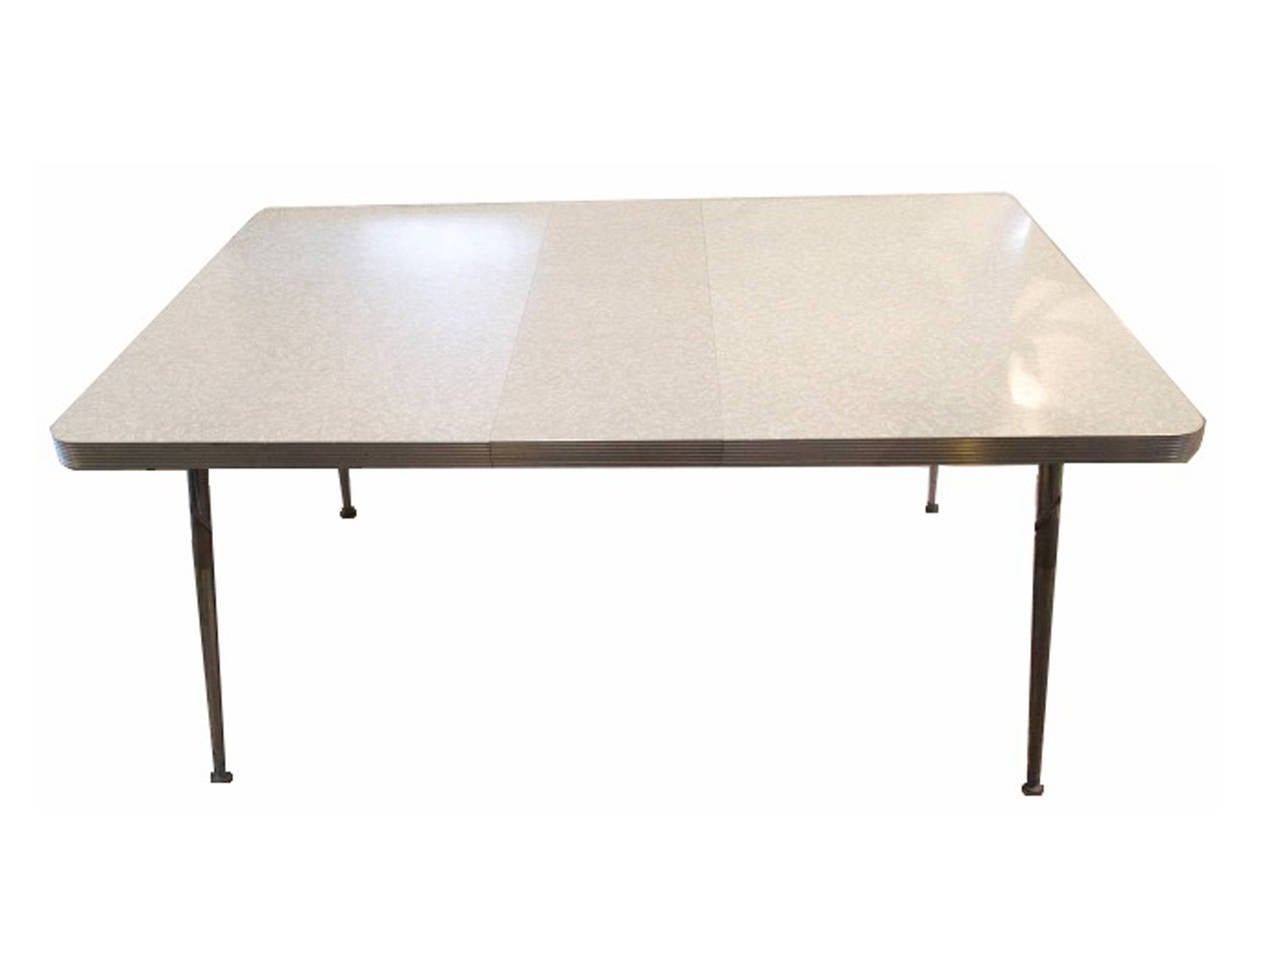 Mid century formica top kitchen table for sale at 1stdibs - Formica top kitchen tables ...